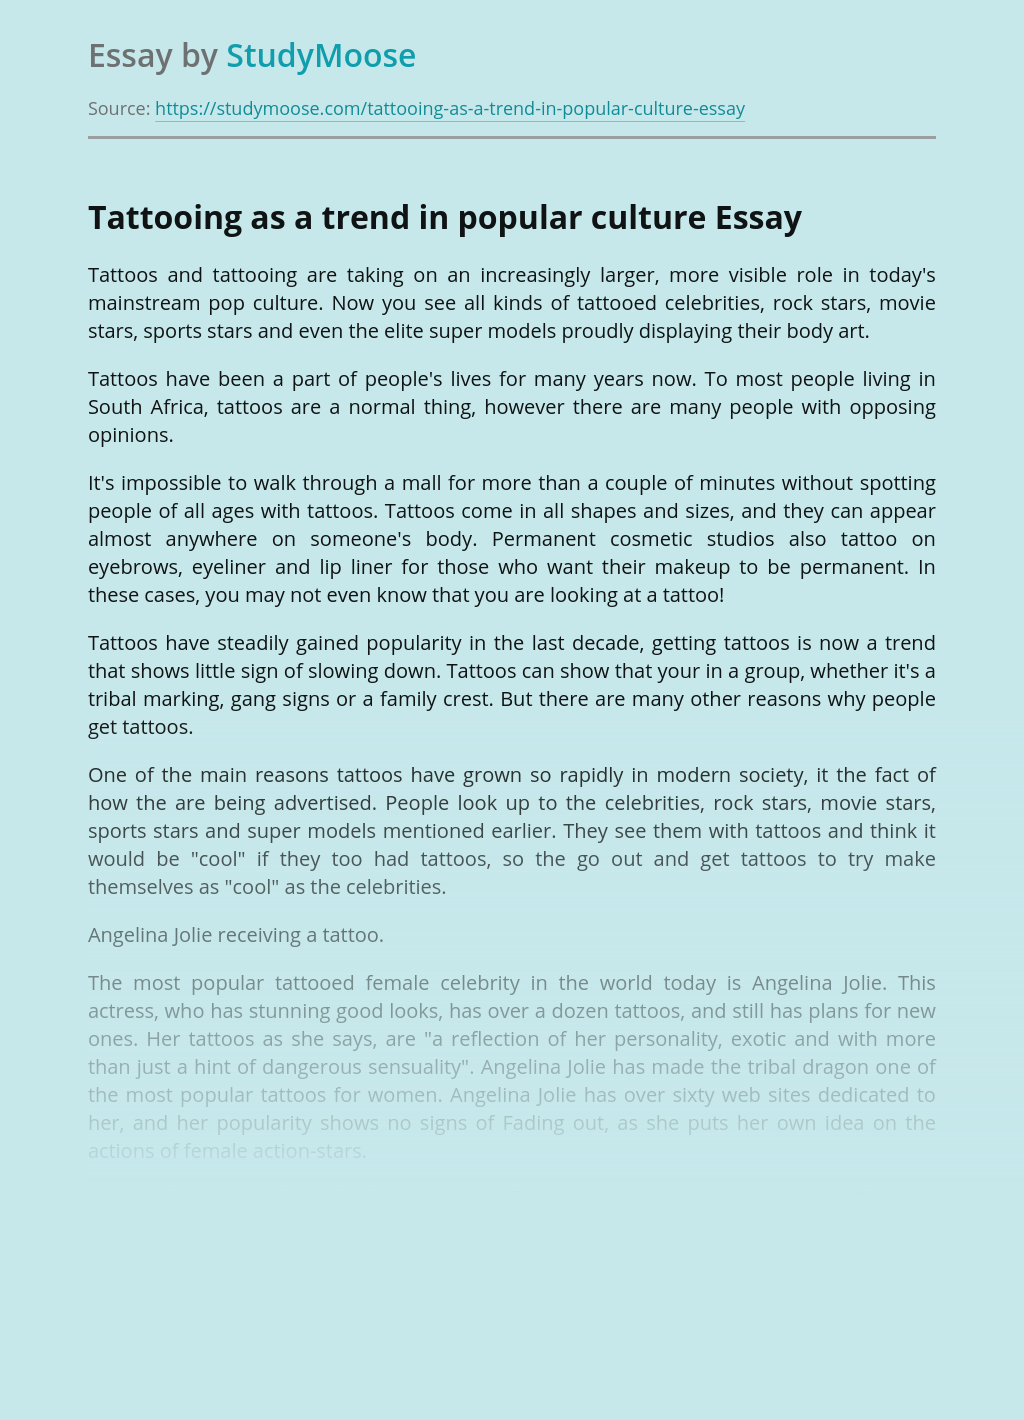 Tattooing as a trend in popular culture